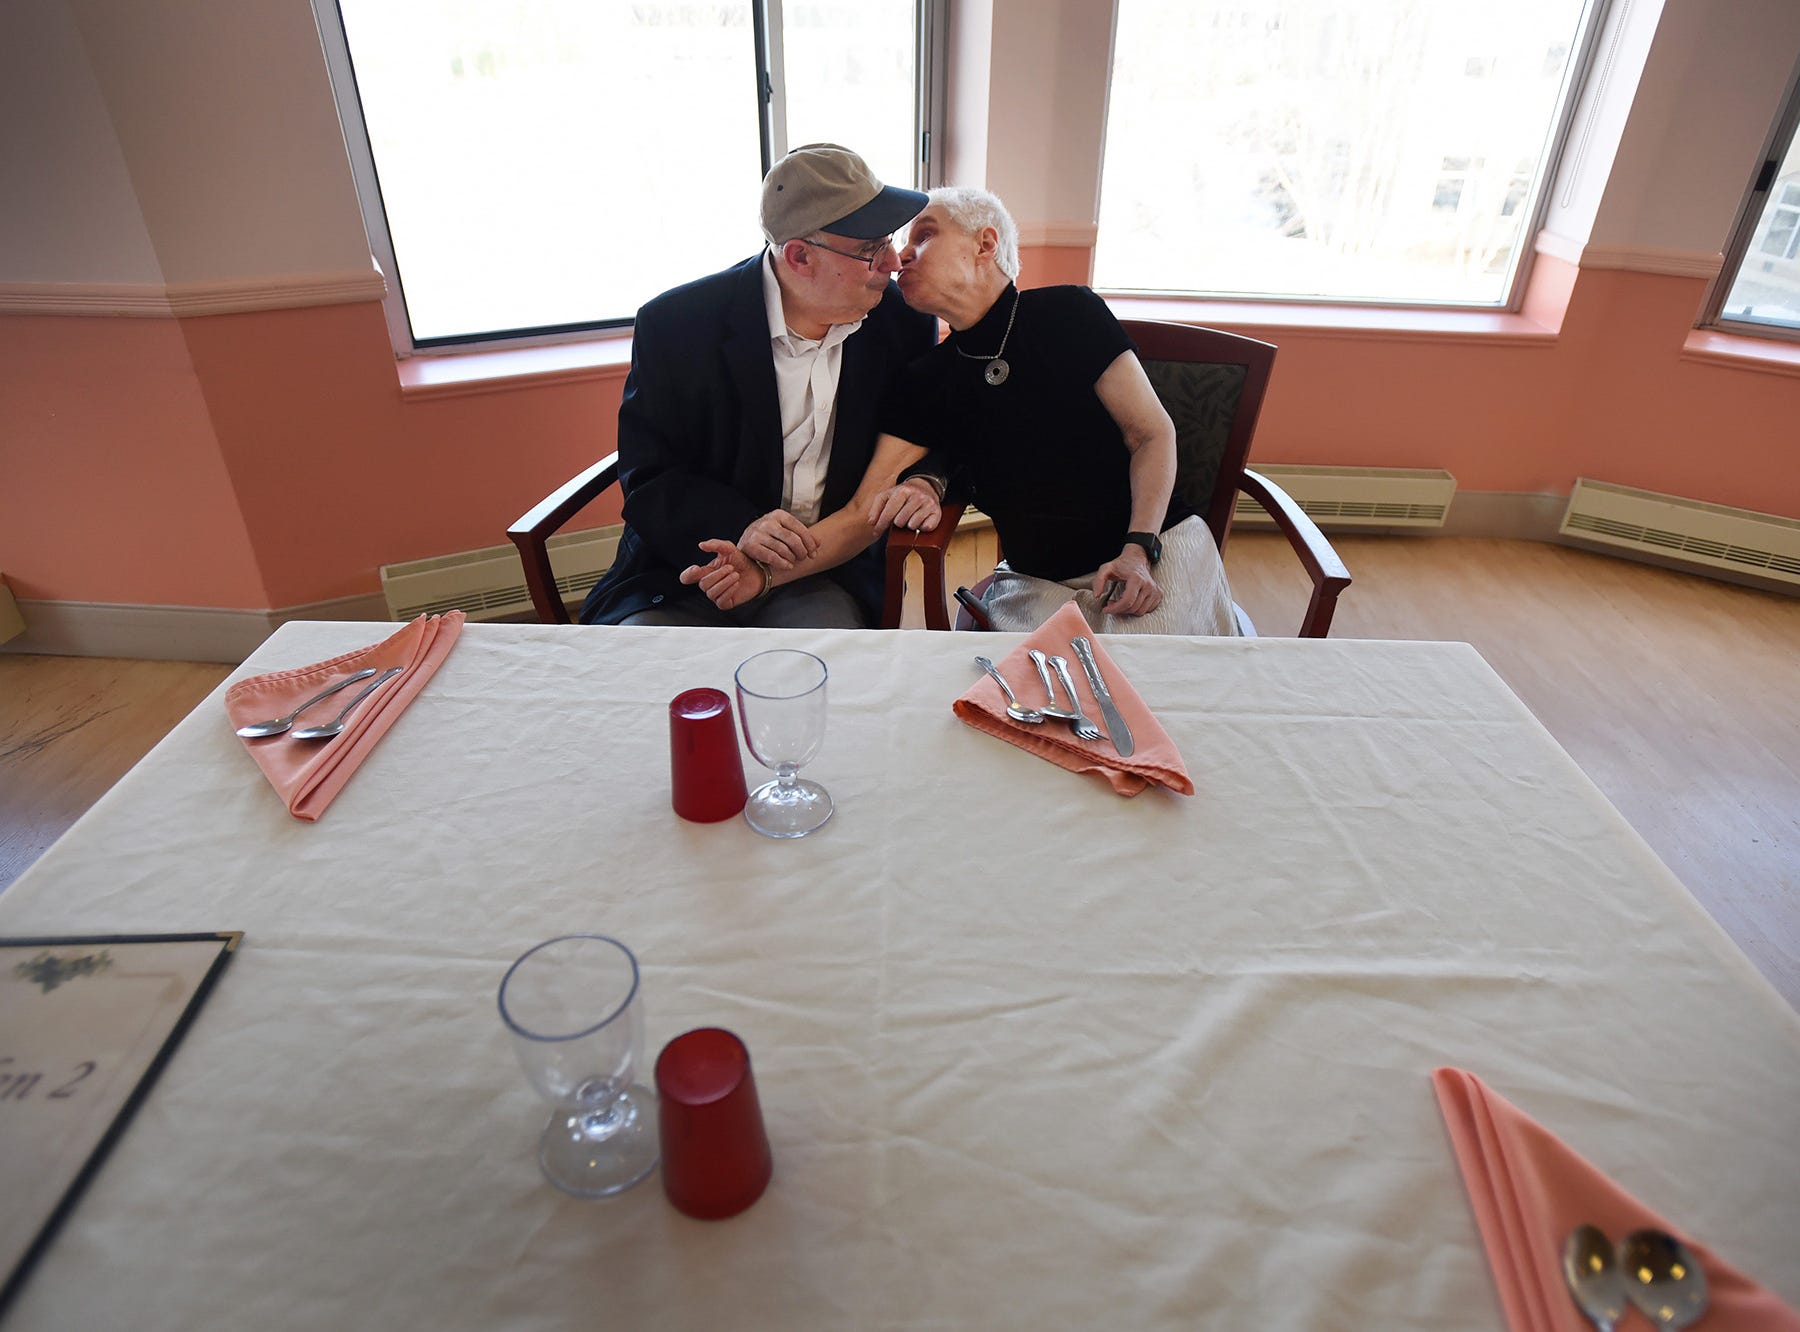 Charlotte Poole (age 69) and her fiance Michael Frederick Shapiro (age 73), reunited lovers who became engaged at the Rockleigh Home earlier this month, kiss each other, photographed at Jewish Home at Rockleigh in Rockleigh on 02/08/18.